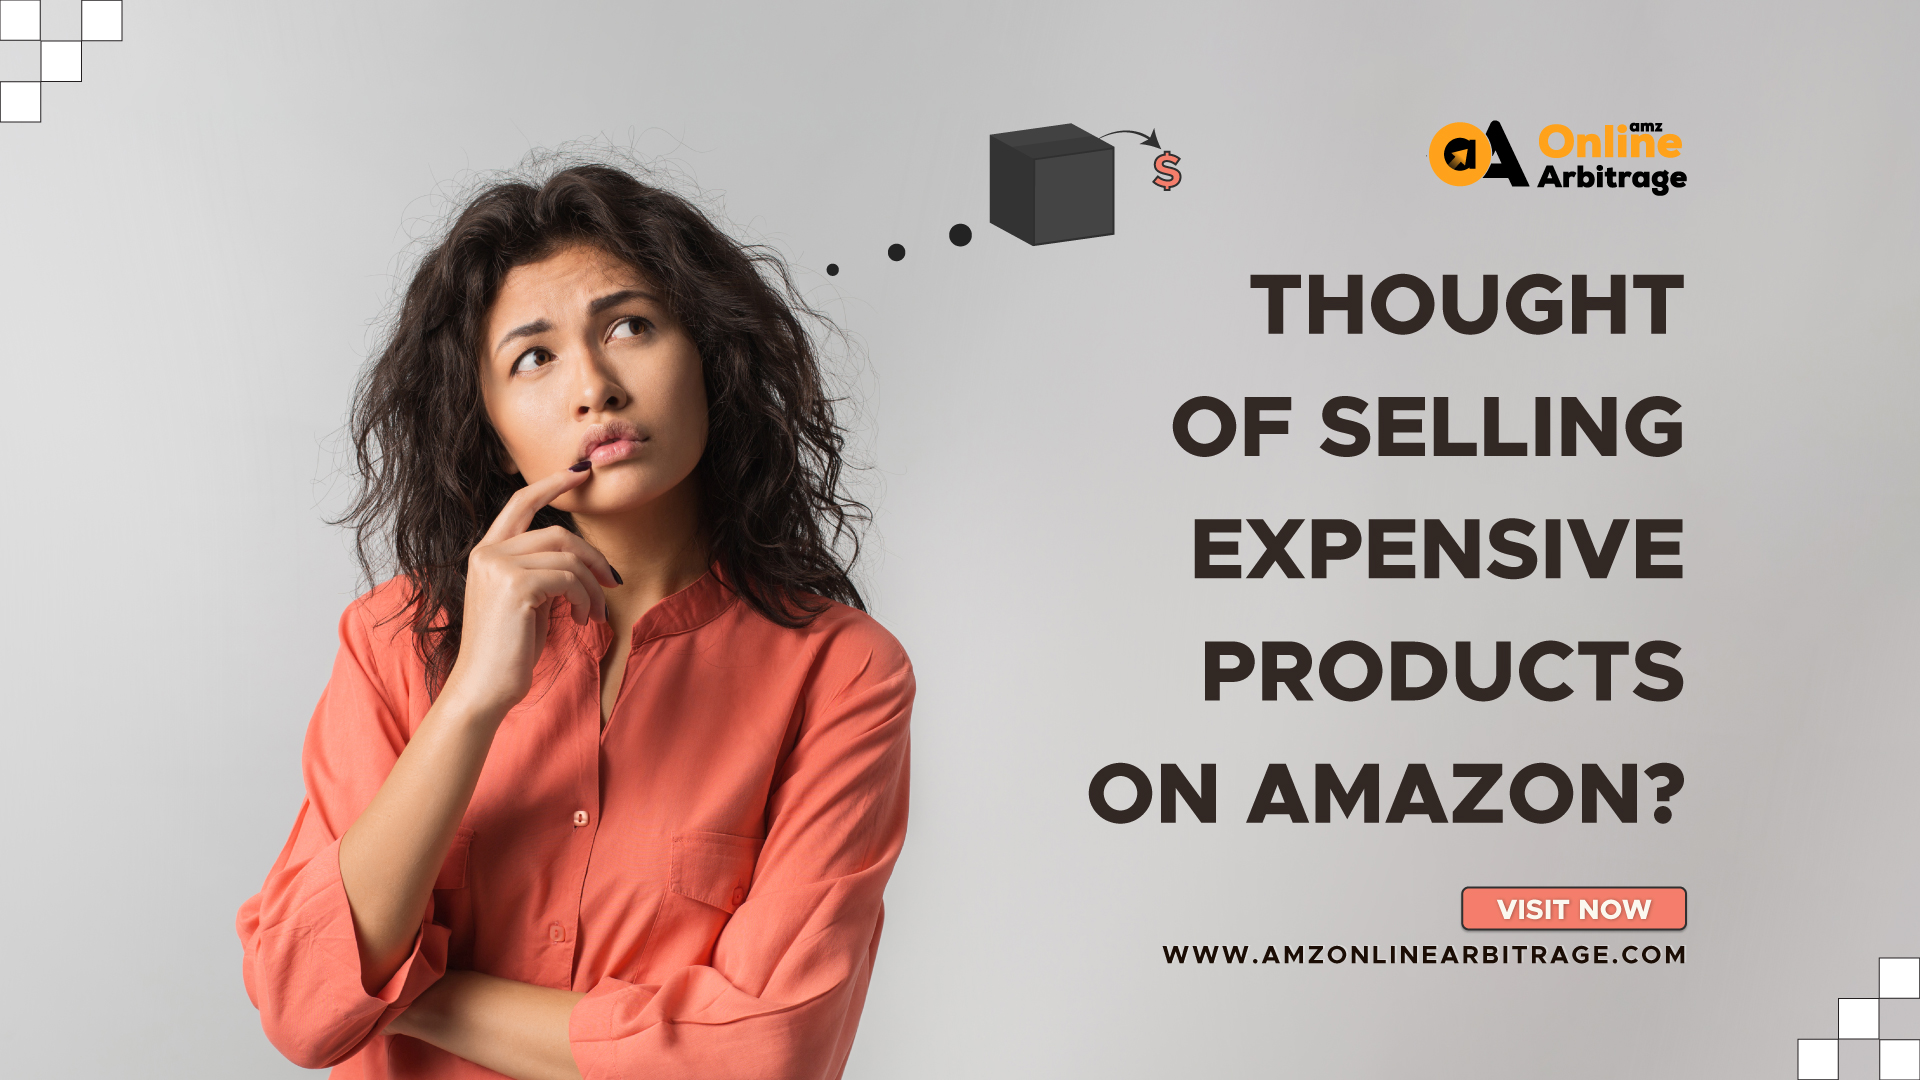 THOUGHT OF SELLING EXPENSIVE PRODUCTS ON AMAZON?